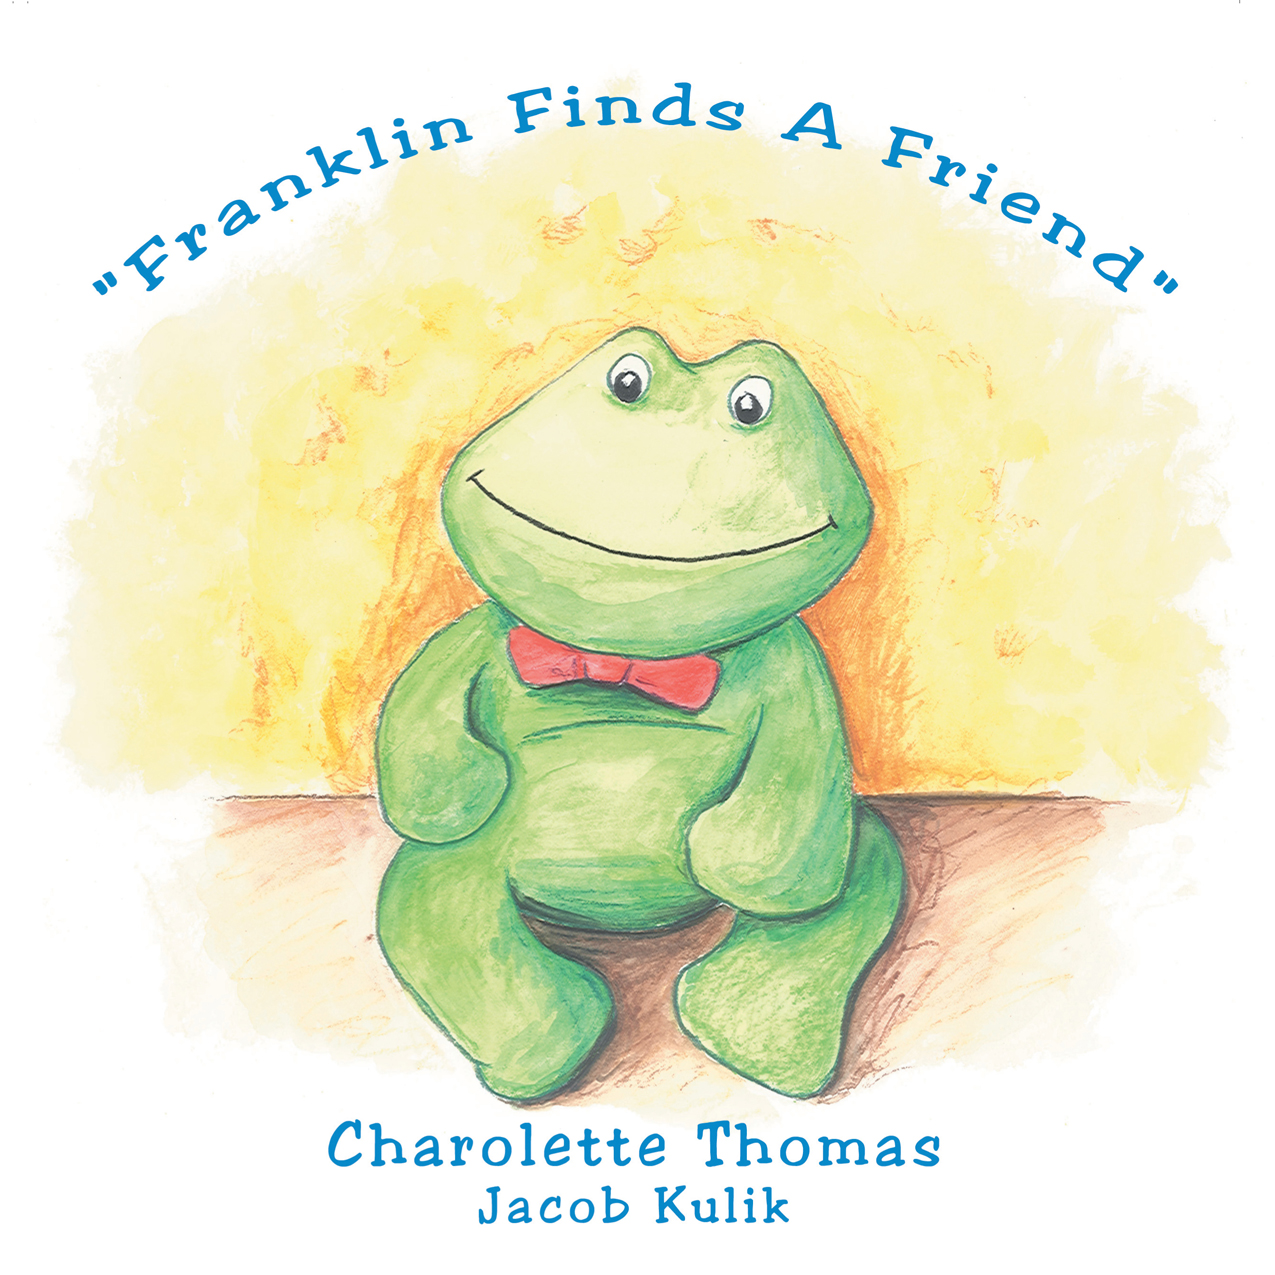 """Franklin Finds A Friend"""